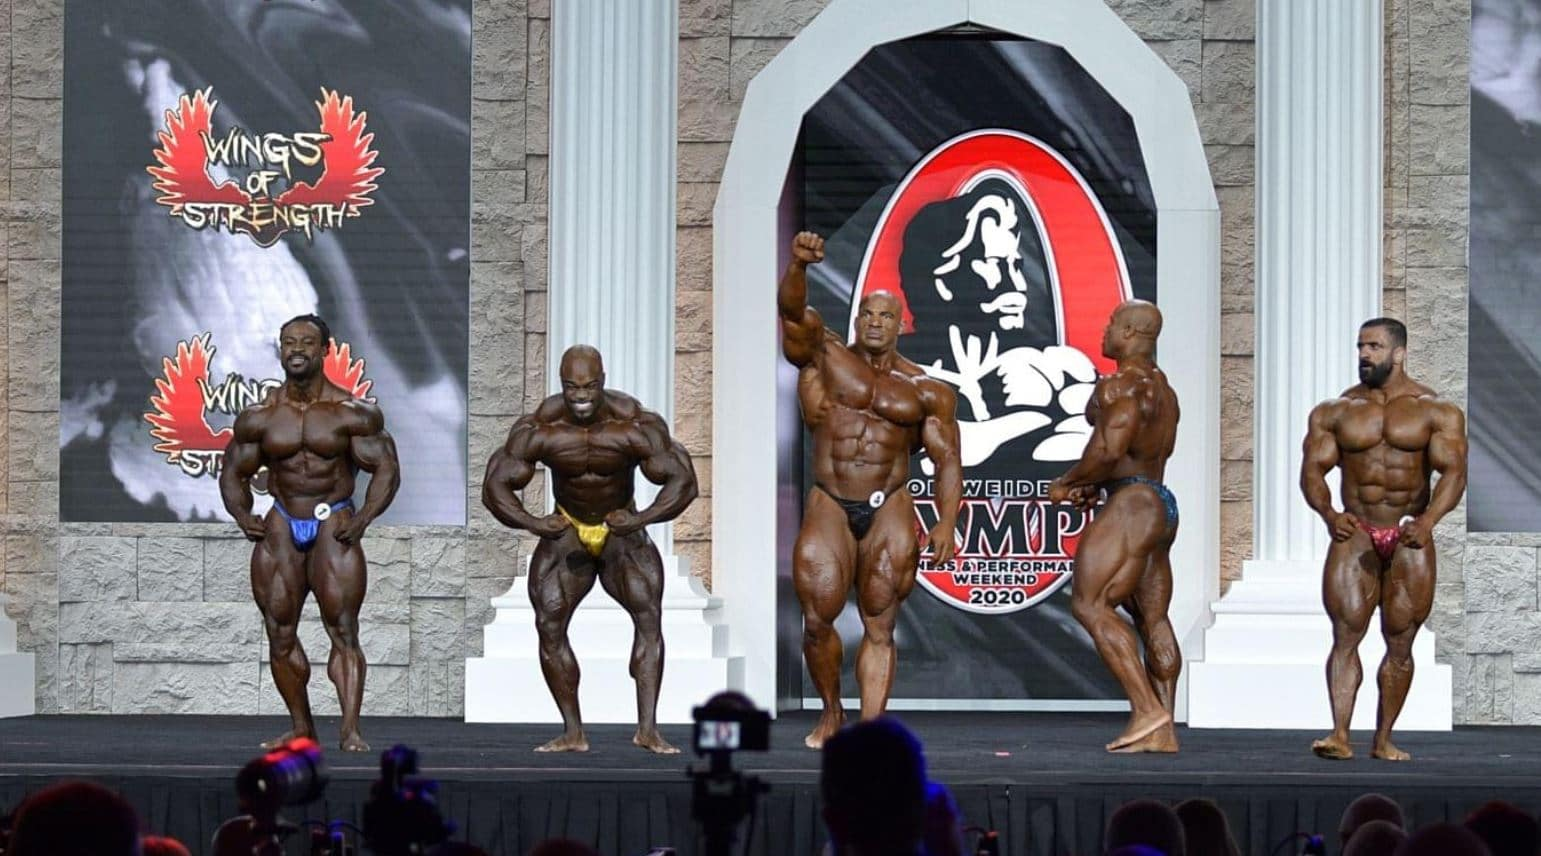 How to watch Mr. Olympia Live Streaming?